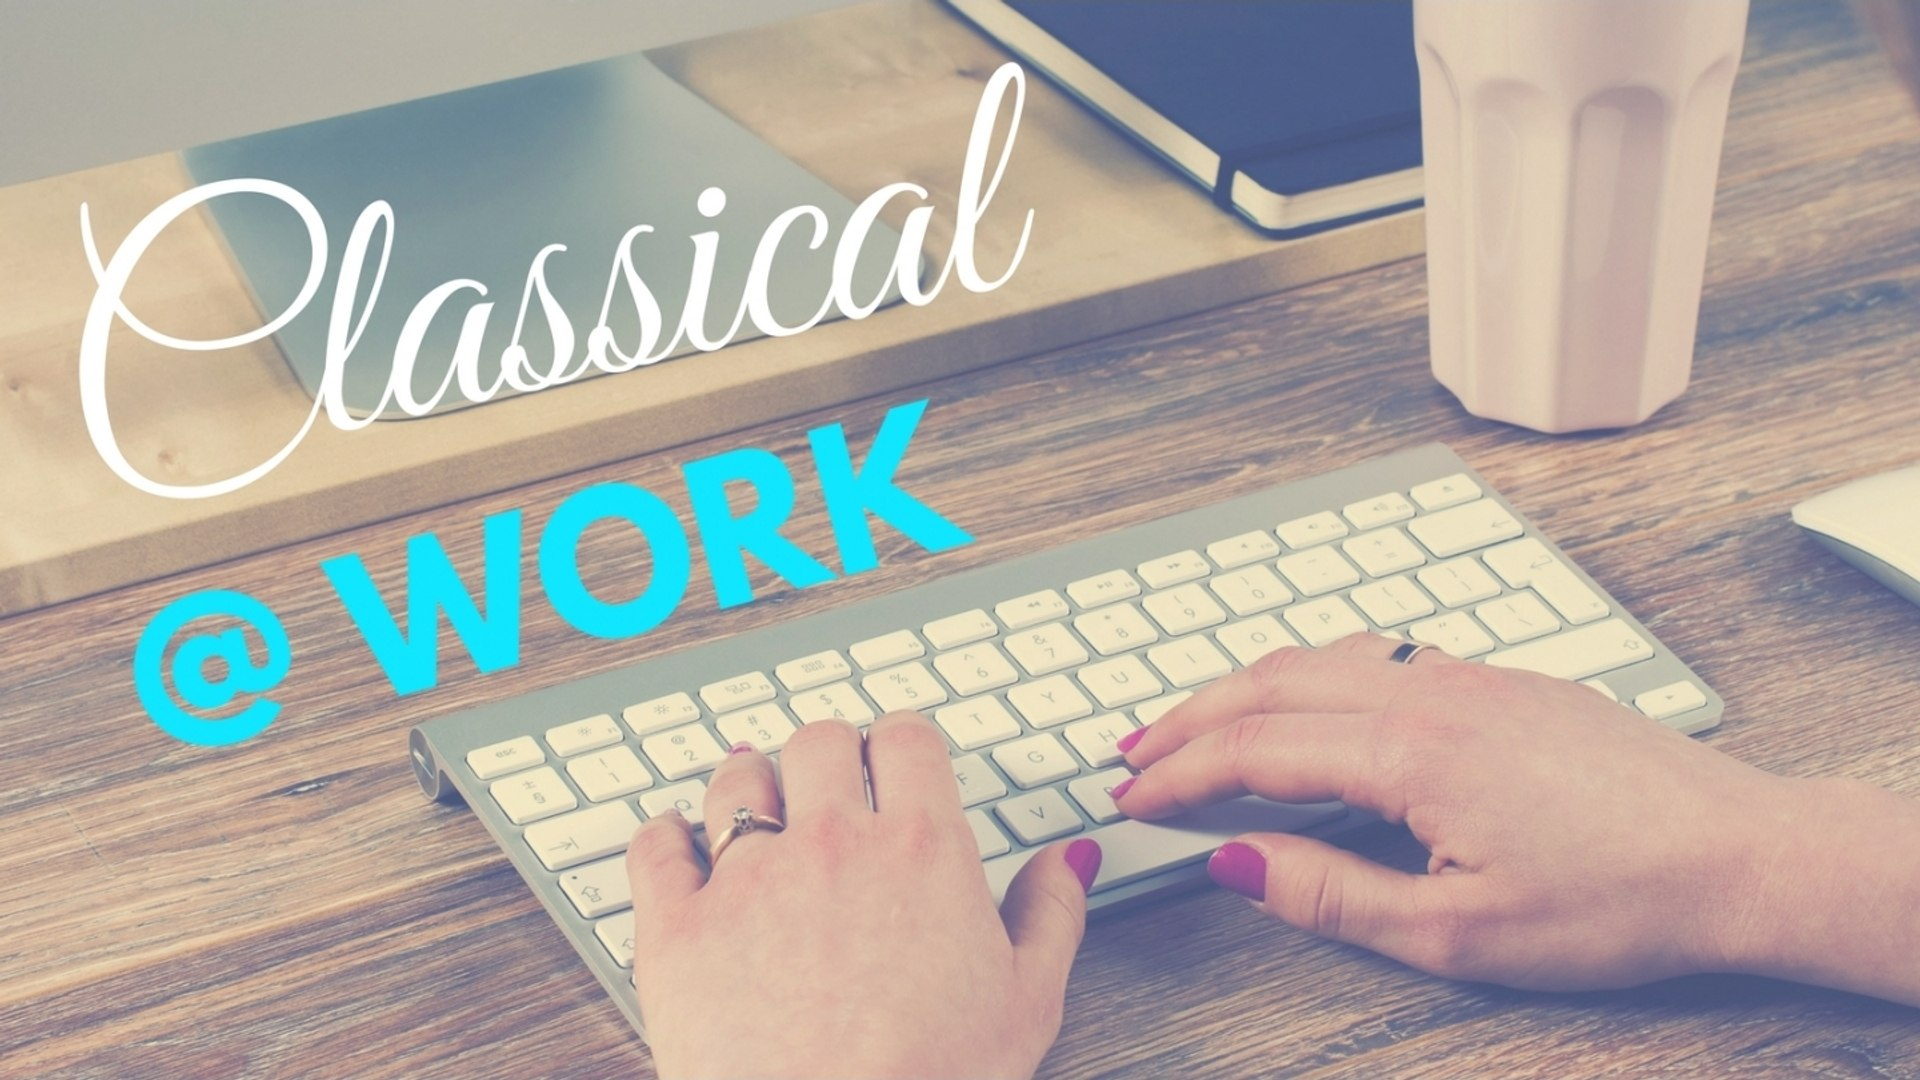 Classical at Work